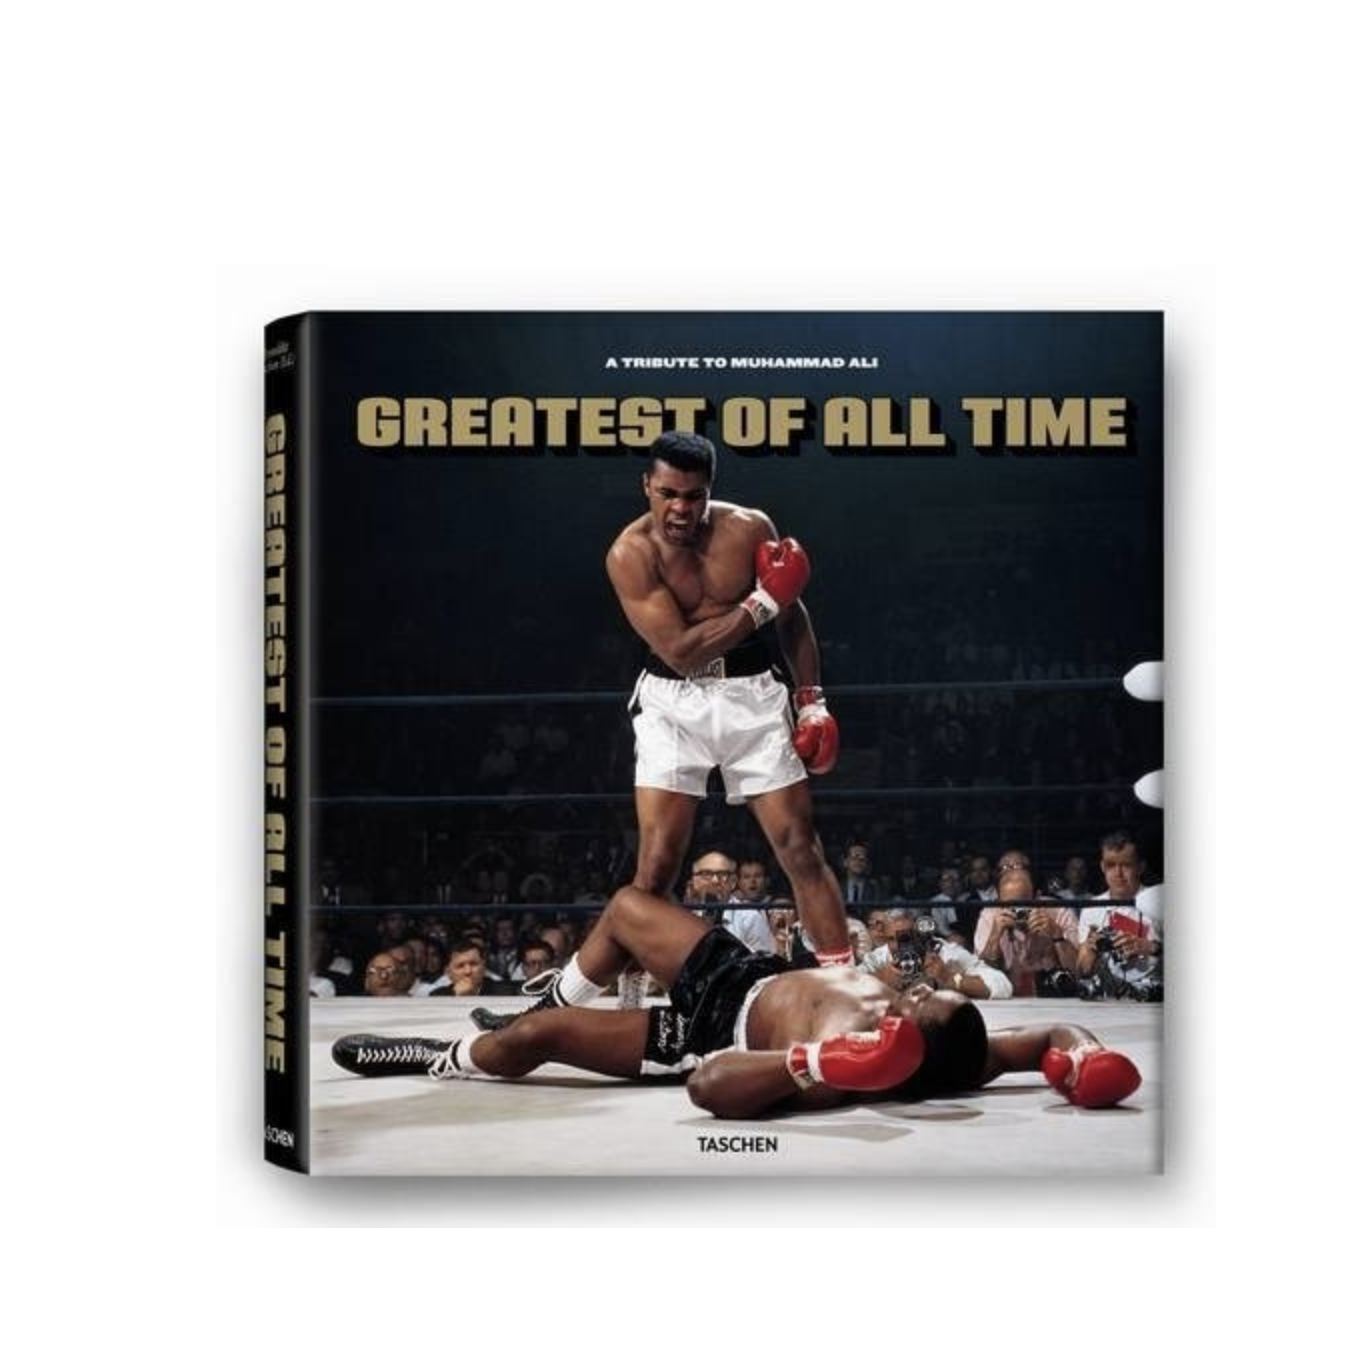 COFFEE TABLE BOOK - This one of Muhammad Ali is not only cool decor for the coffee table, he will also enjoy flipping through this one. $150 but worth it.